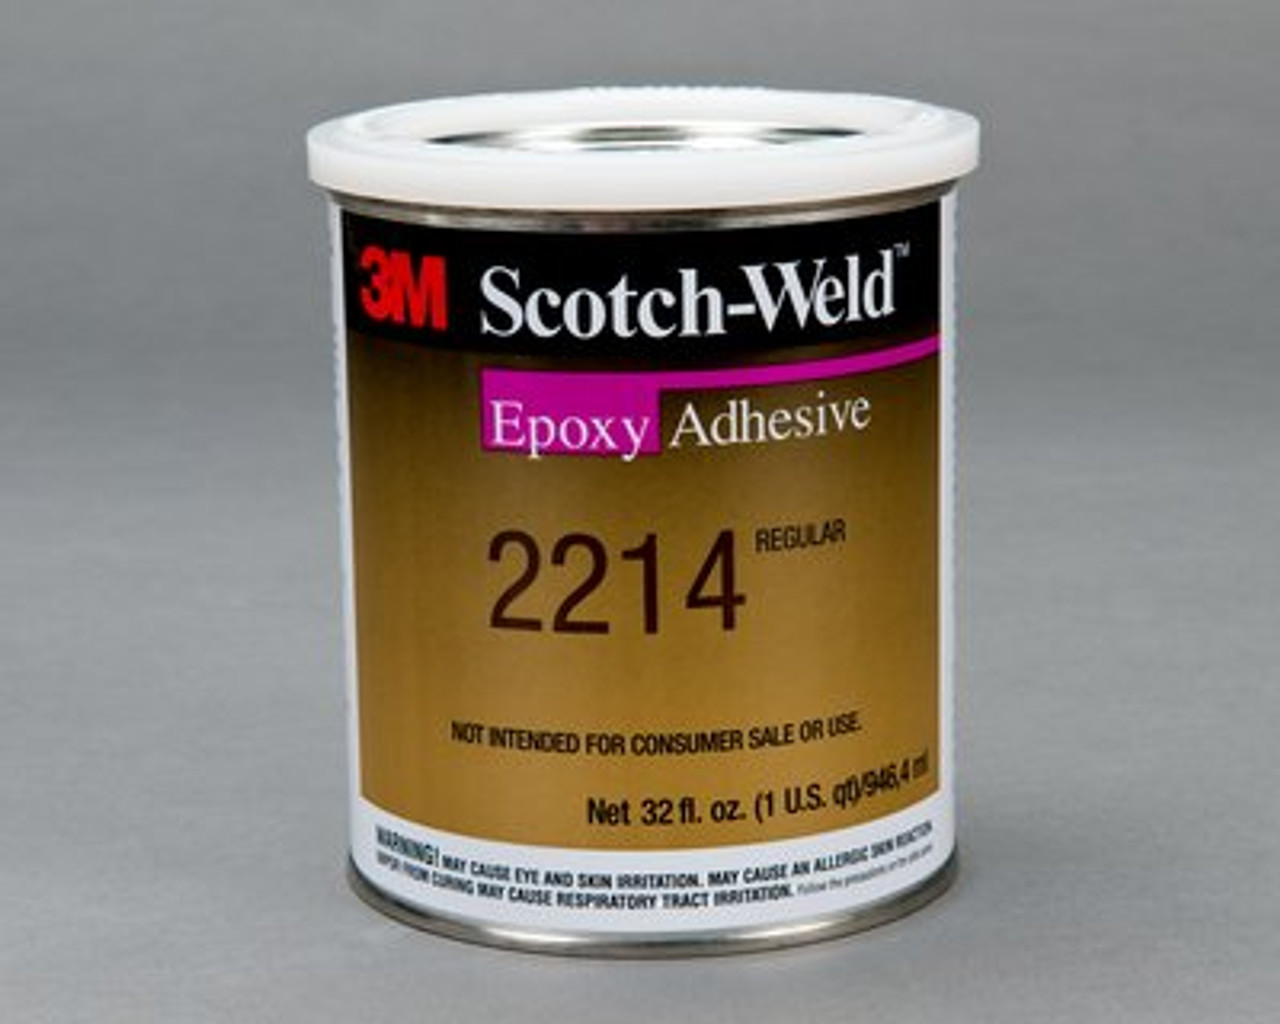 3M™ Scotch-Weld™ Epoxy Adhesive 2214 Hi-Density Gray, 6 fl oz Plastic Cartridge *NON RETURNABLE ITEM. ADDITIONAL SURCHARGE APPLIES TO THIS ITEM. CHARGE WILL NOT SHOW ON INITIAL CONFIRMATION. SEE PRODUCT DESCRIPTION FOR MORE INFO*